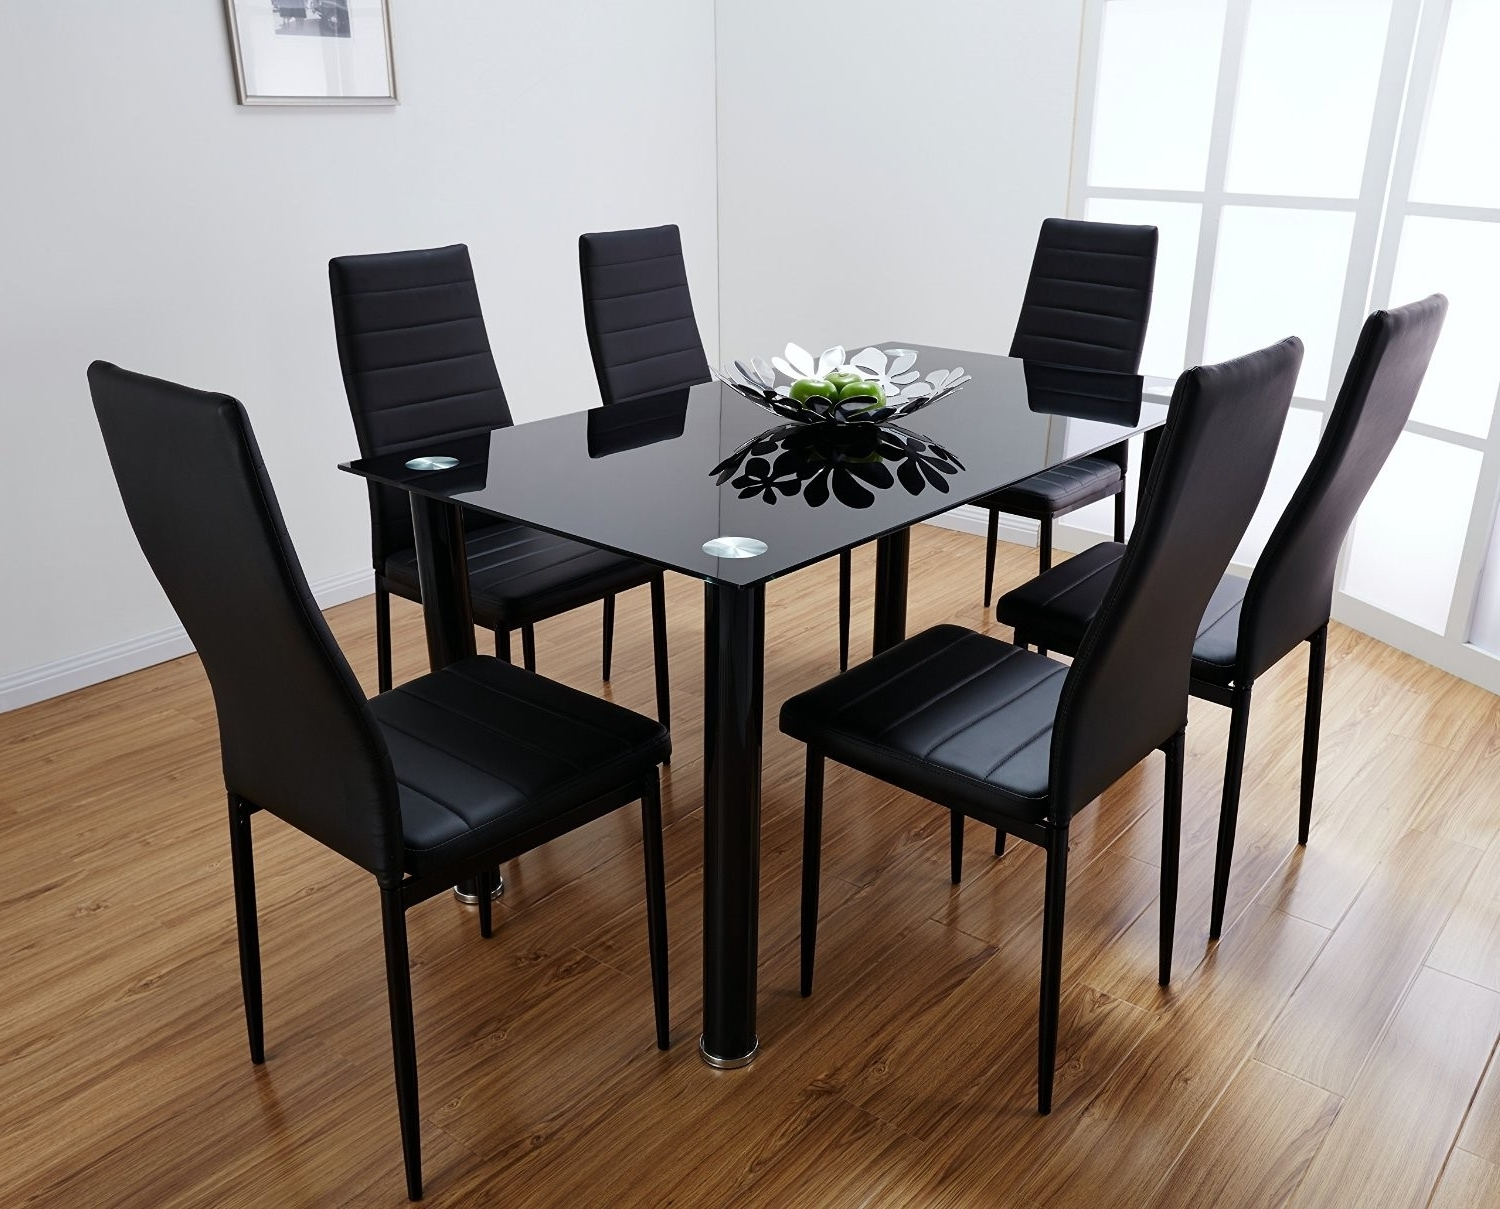 Black Glass Dining Table Decorating Ideas With 4 Chairs – Home Decor Regarding Popular Black Glass Dining Tables (View 5 of 25)